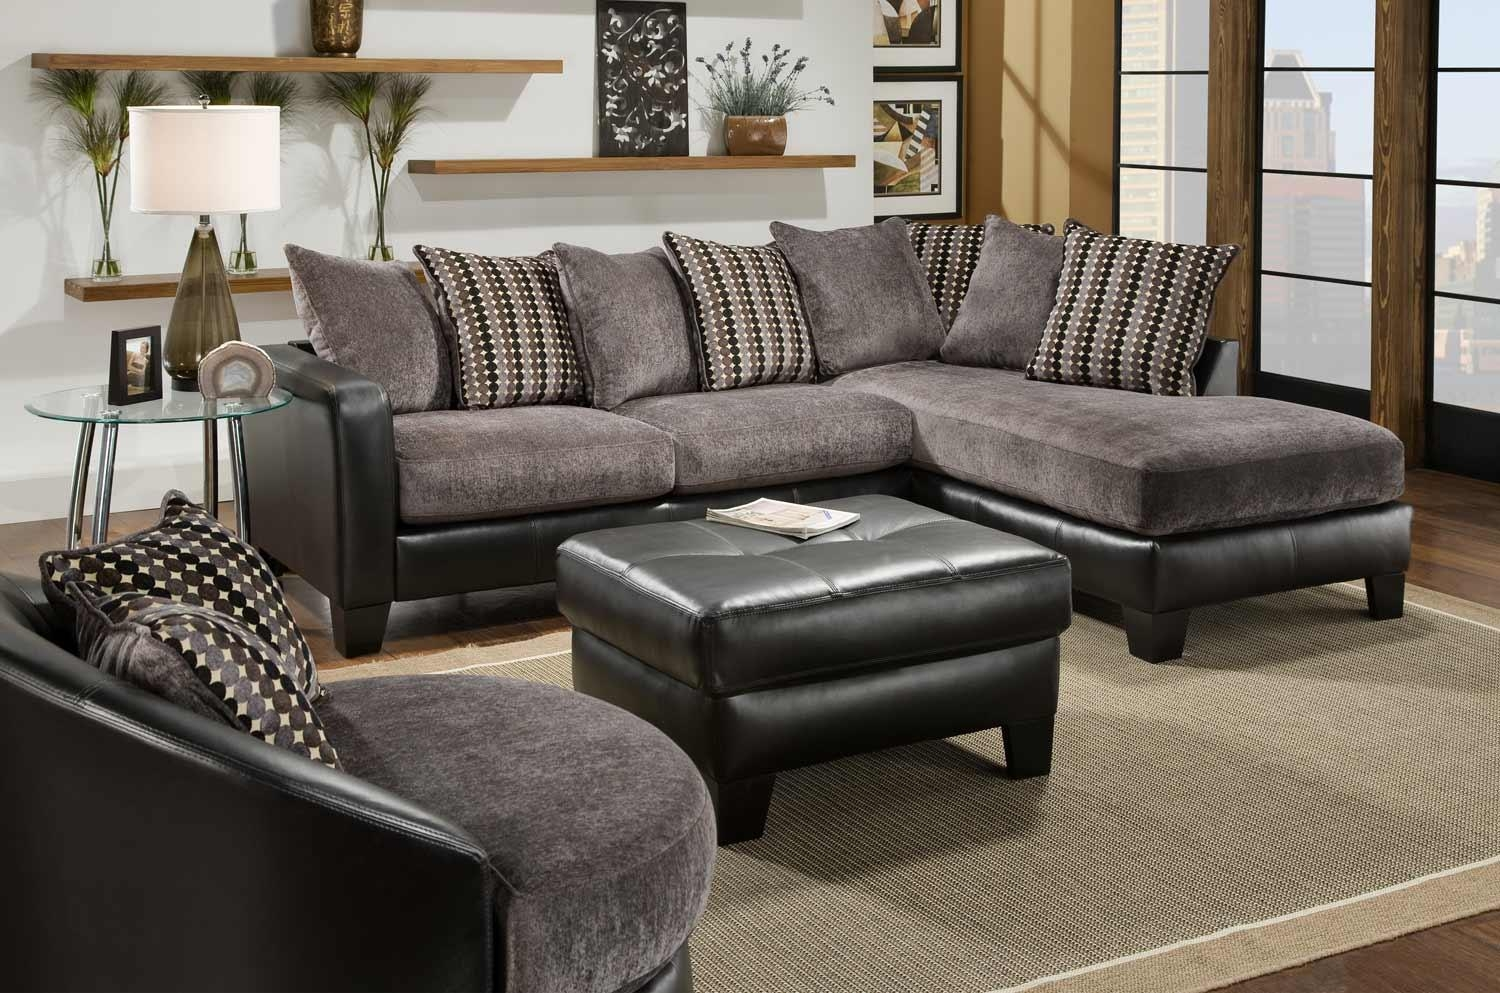 20 Collection Of Leather And Suede Sectional Sofa Ideas